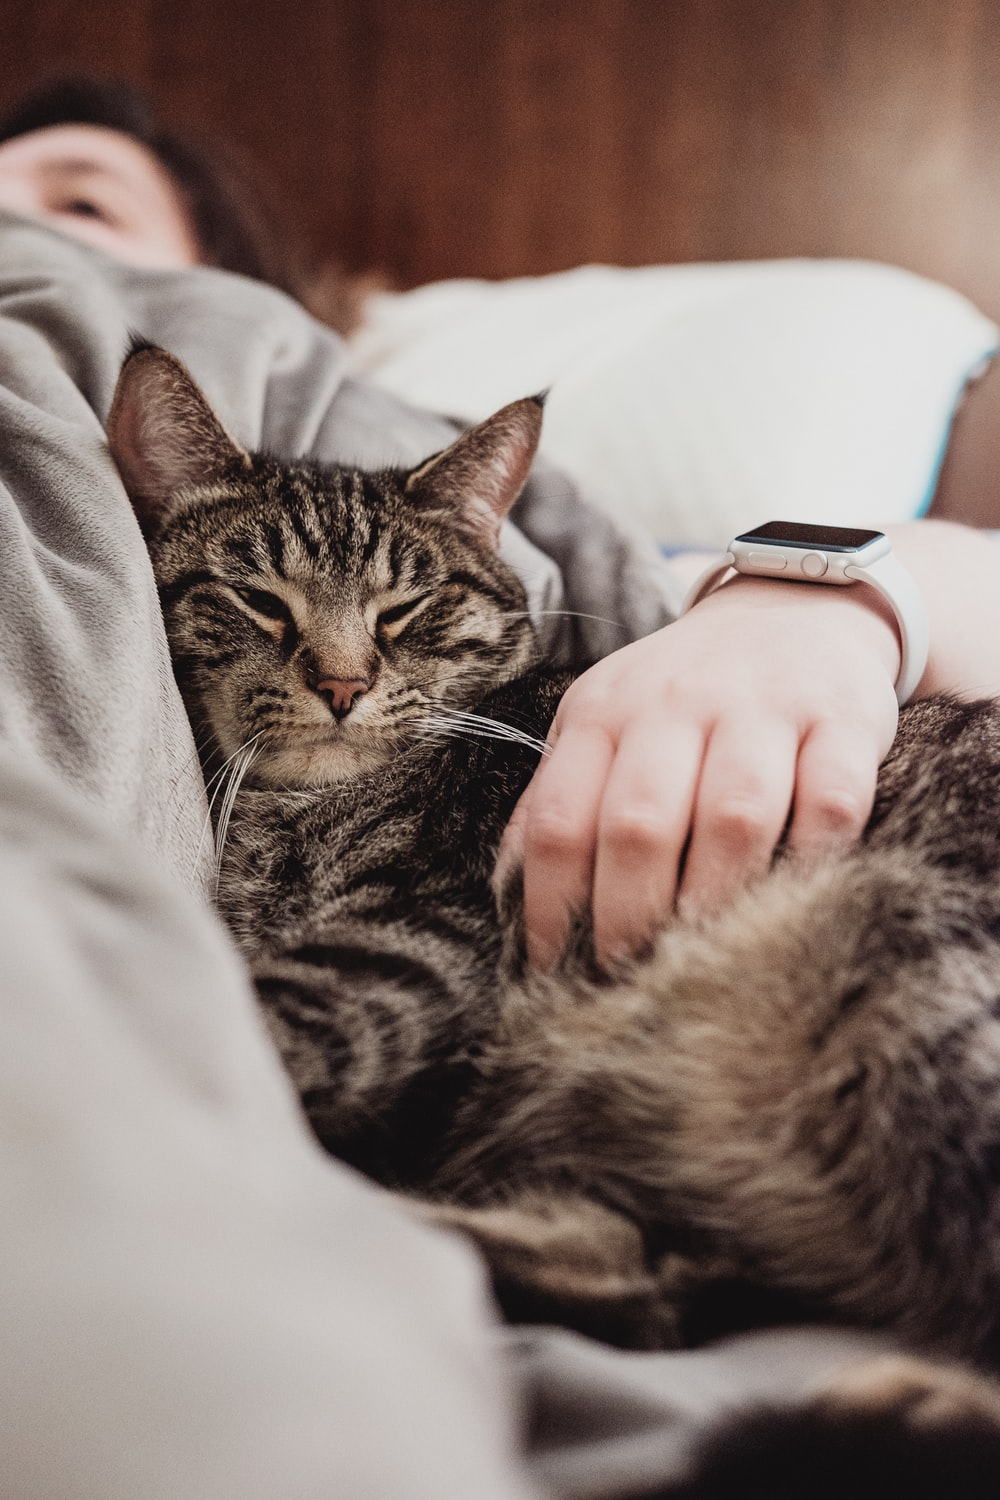 person holding gray tabby cat while lying on bed